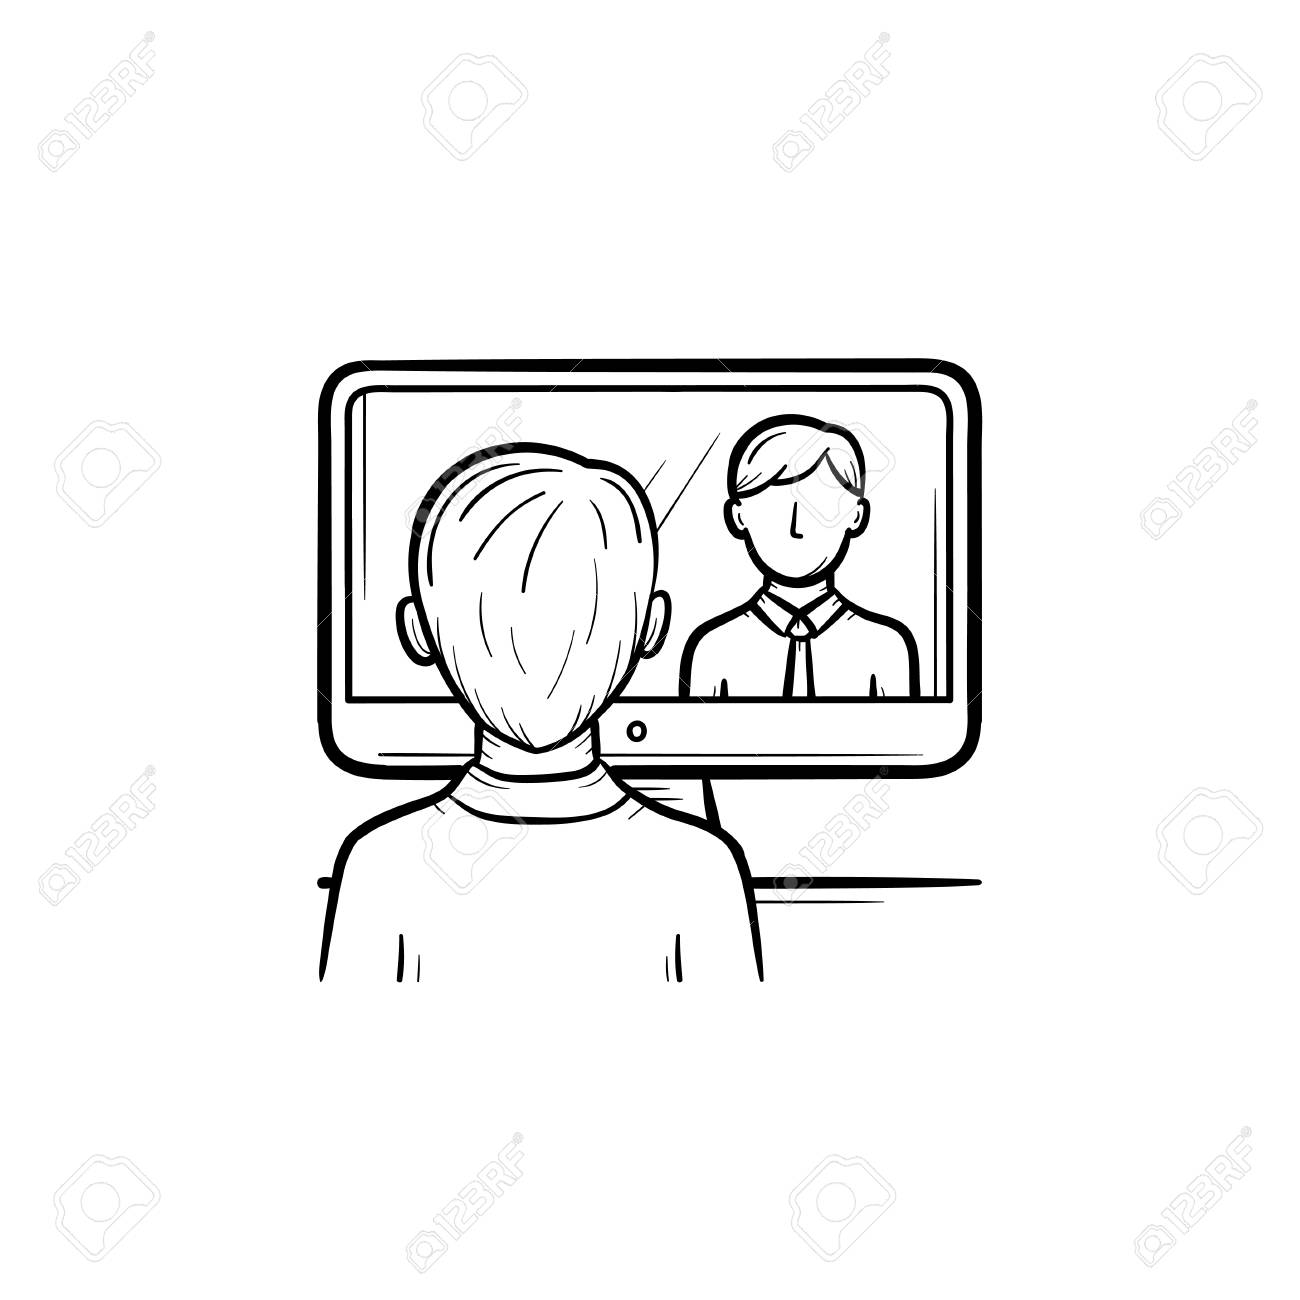 Man Sitting In The Office Running Video Conference Vector Hand